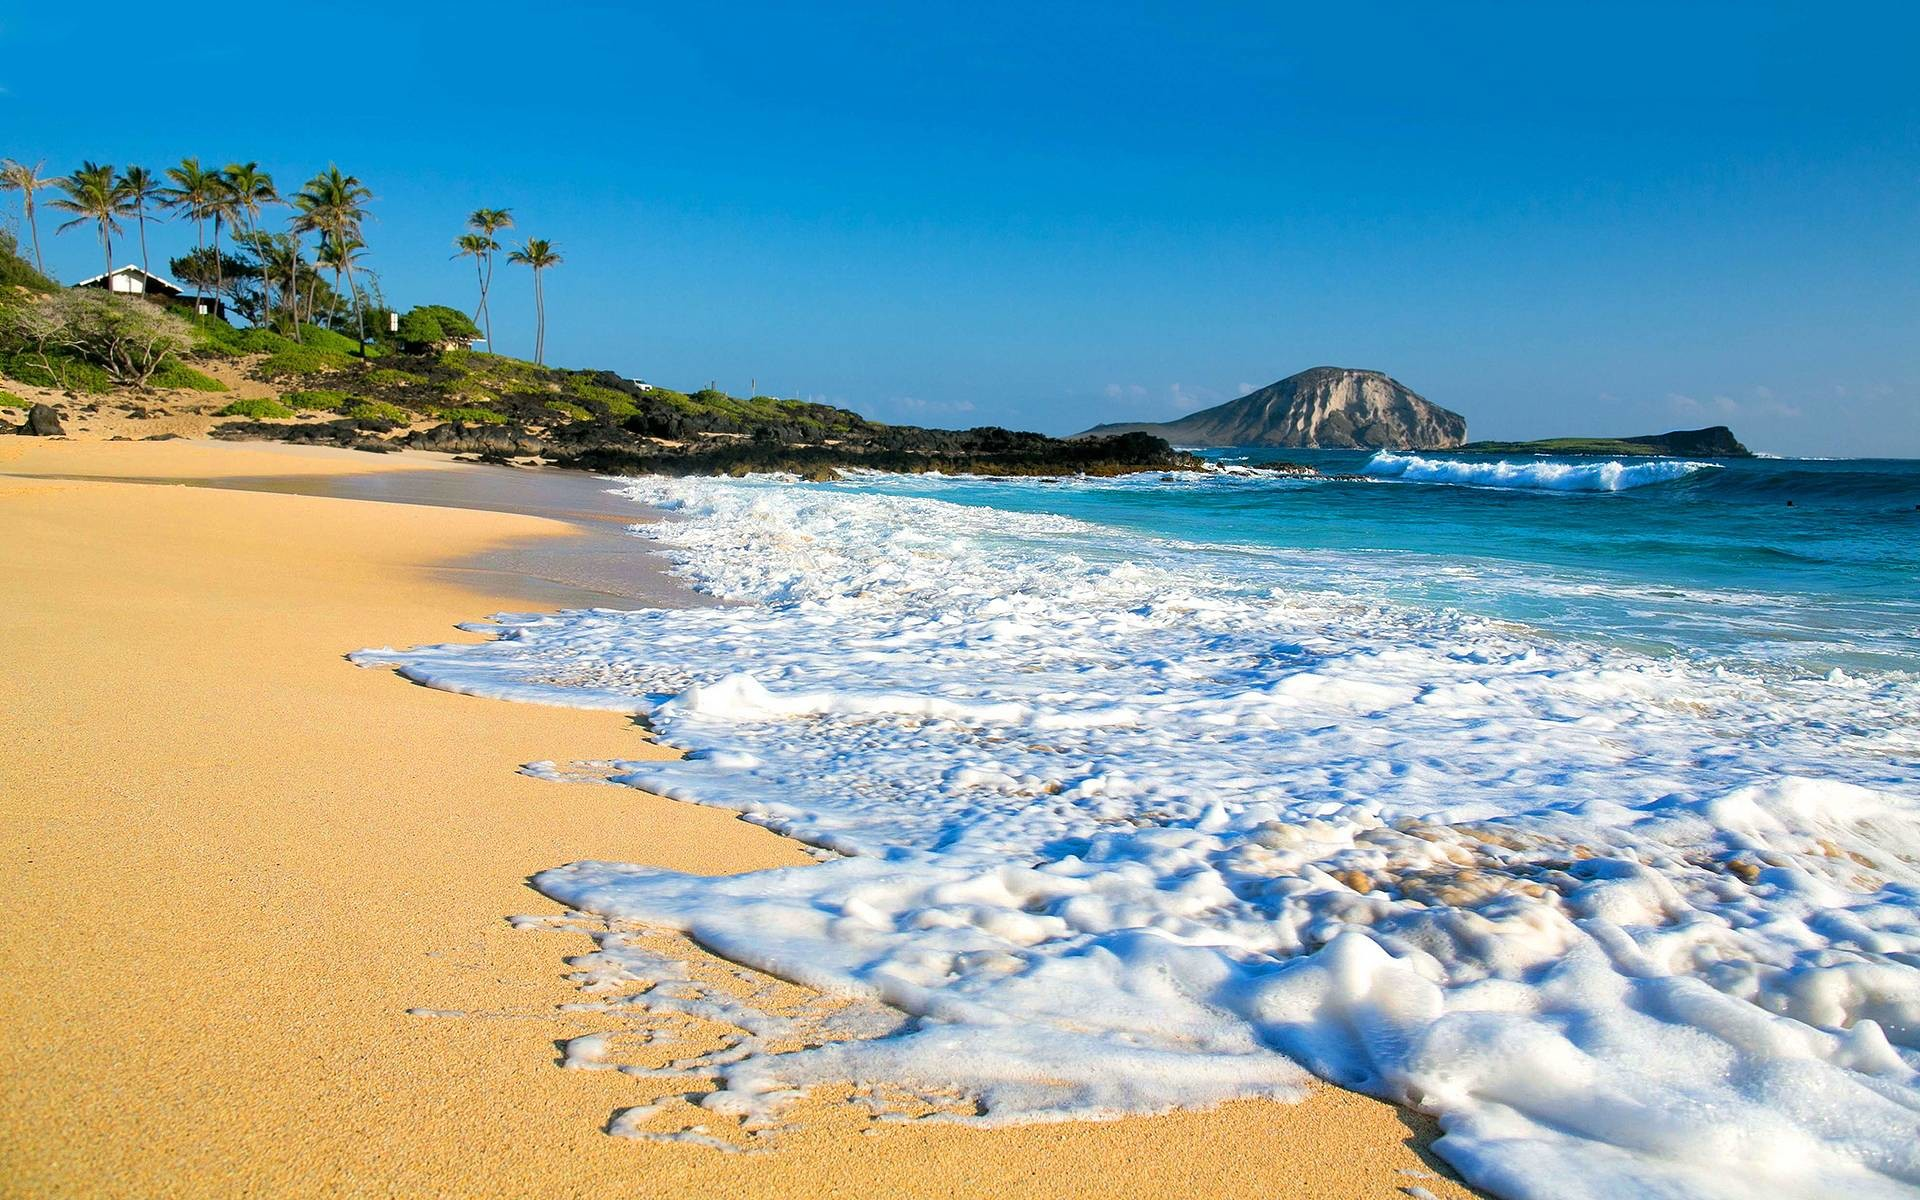 1920x1200 Best Photos hawaii beach 2015 | 2015travelling.